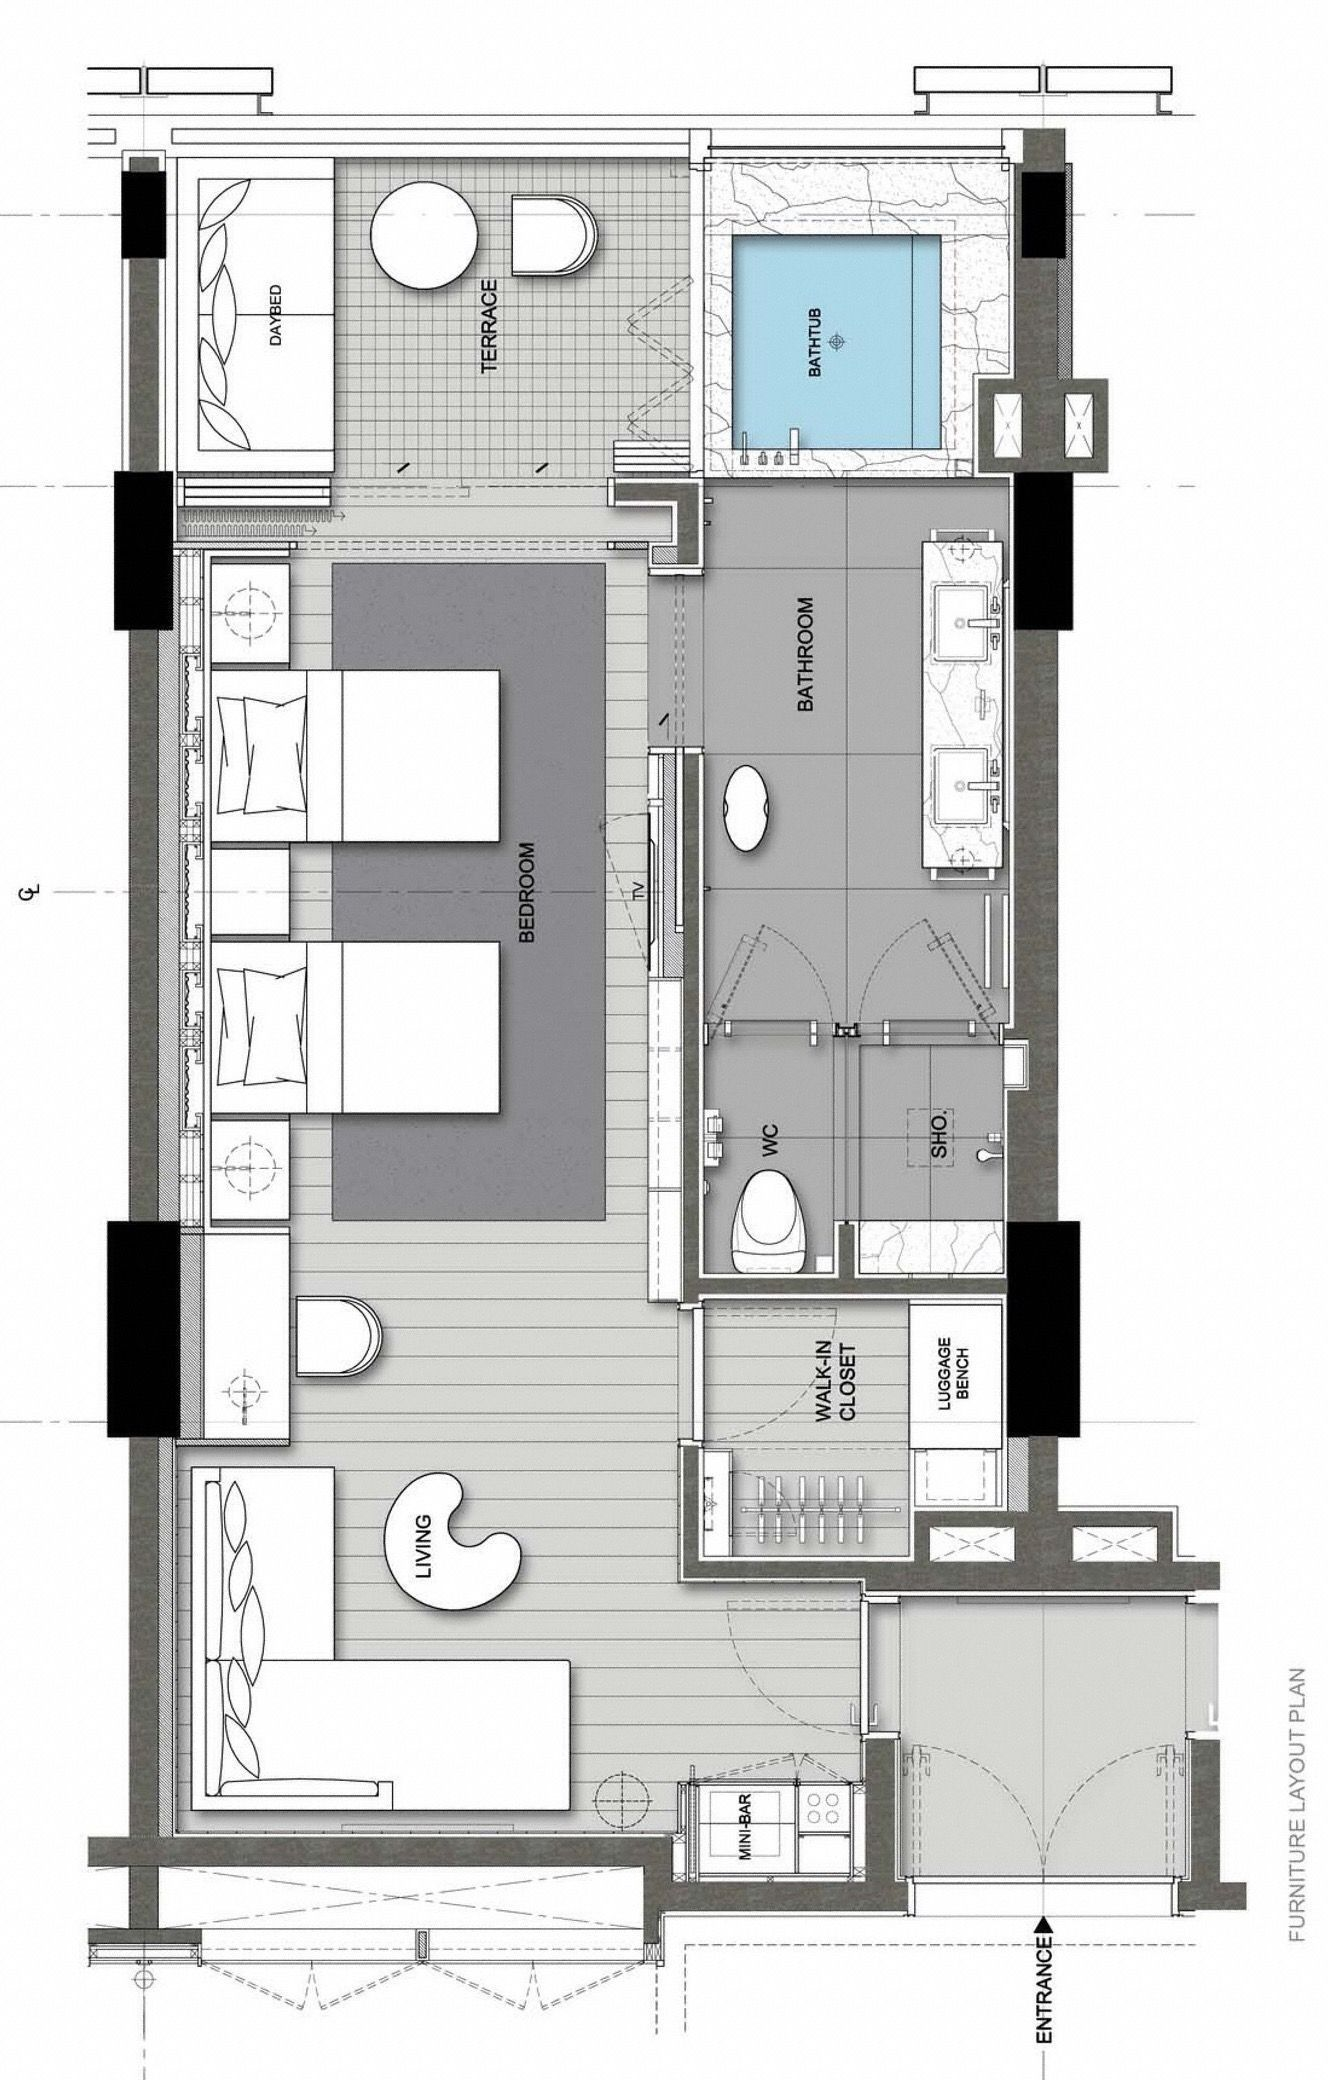 21 Totally Inspiring Apartment Layout Architecture That Everyone Need For Inspiration Hotel Floor Plan Hotel Room Plan Apartment Layout